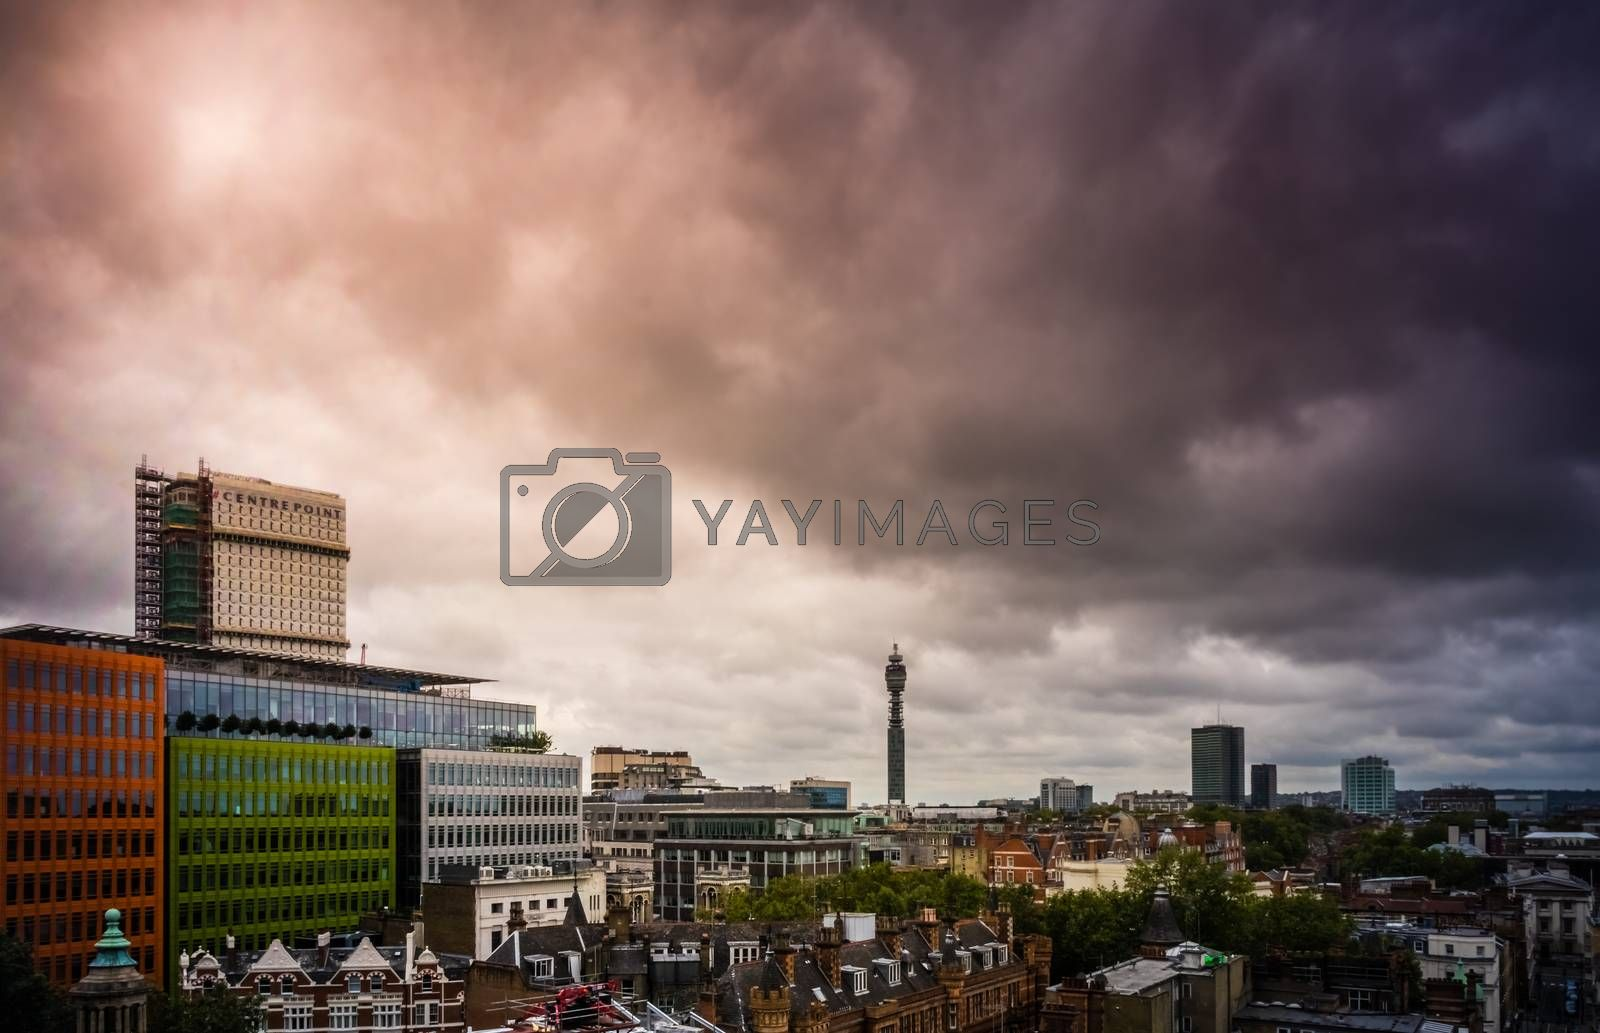 Aerial view of the central area in London with BT tower in the background